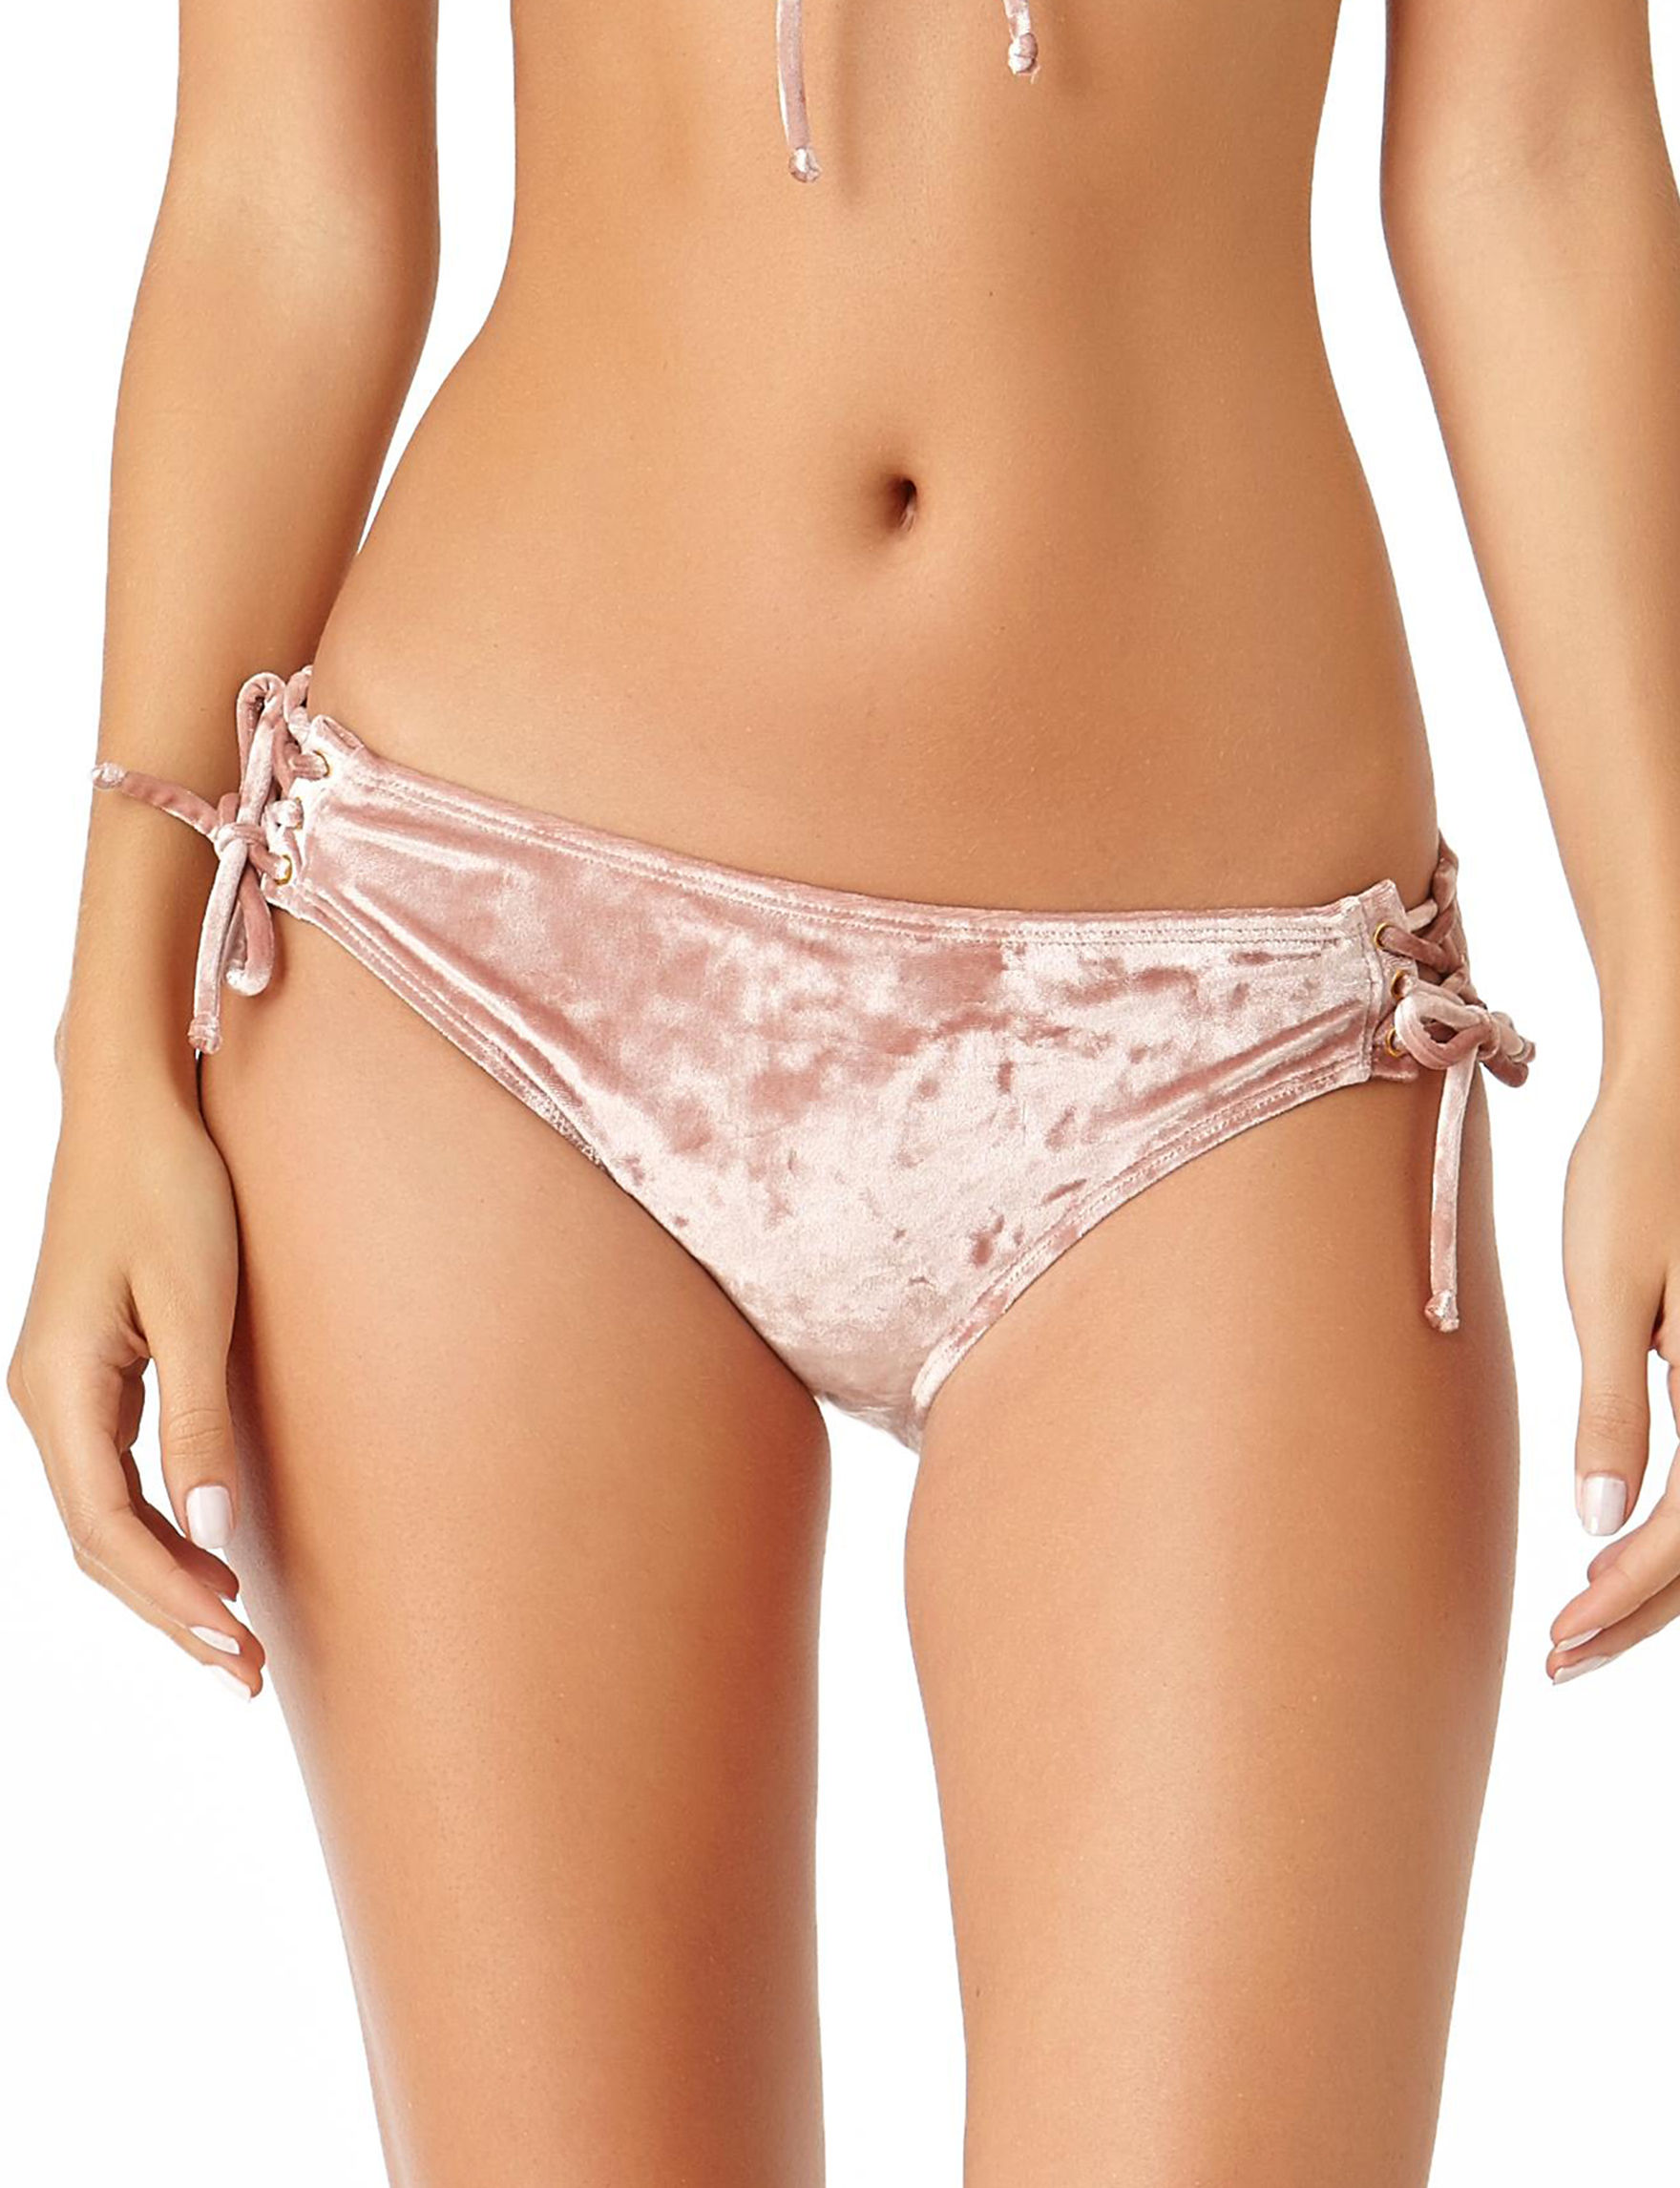 California Sunshine Pink Swimsuit Bottoms Hipster